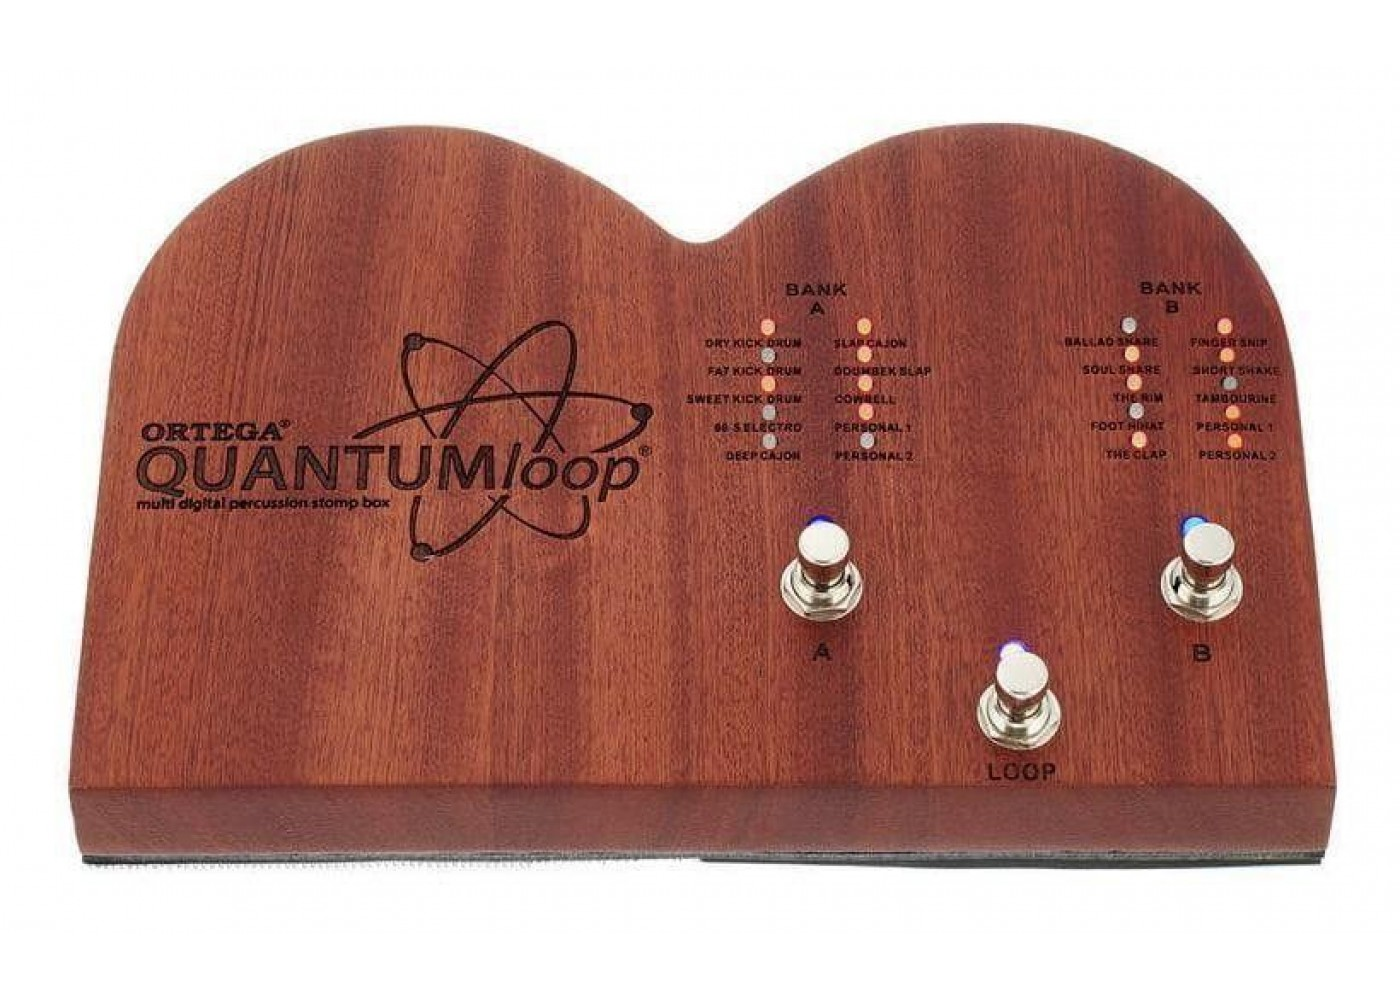 Ortega Model QuantumLoop Multi Digital Percussion Stomp Box And Looper Pedal